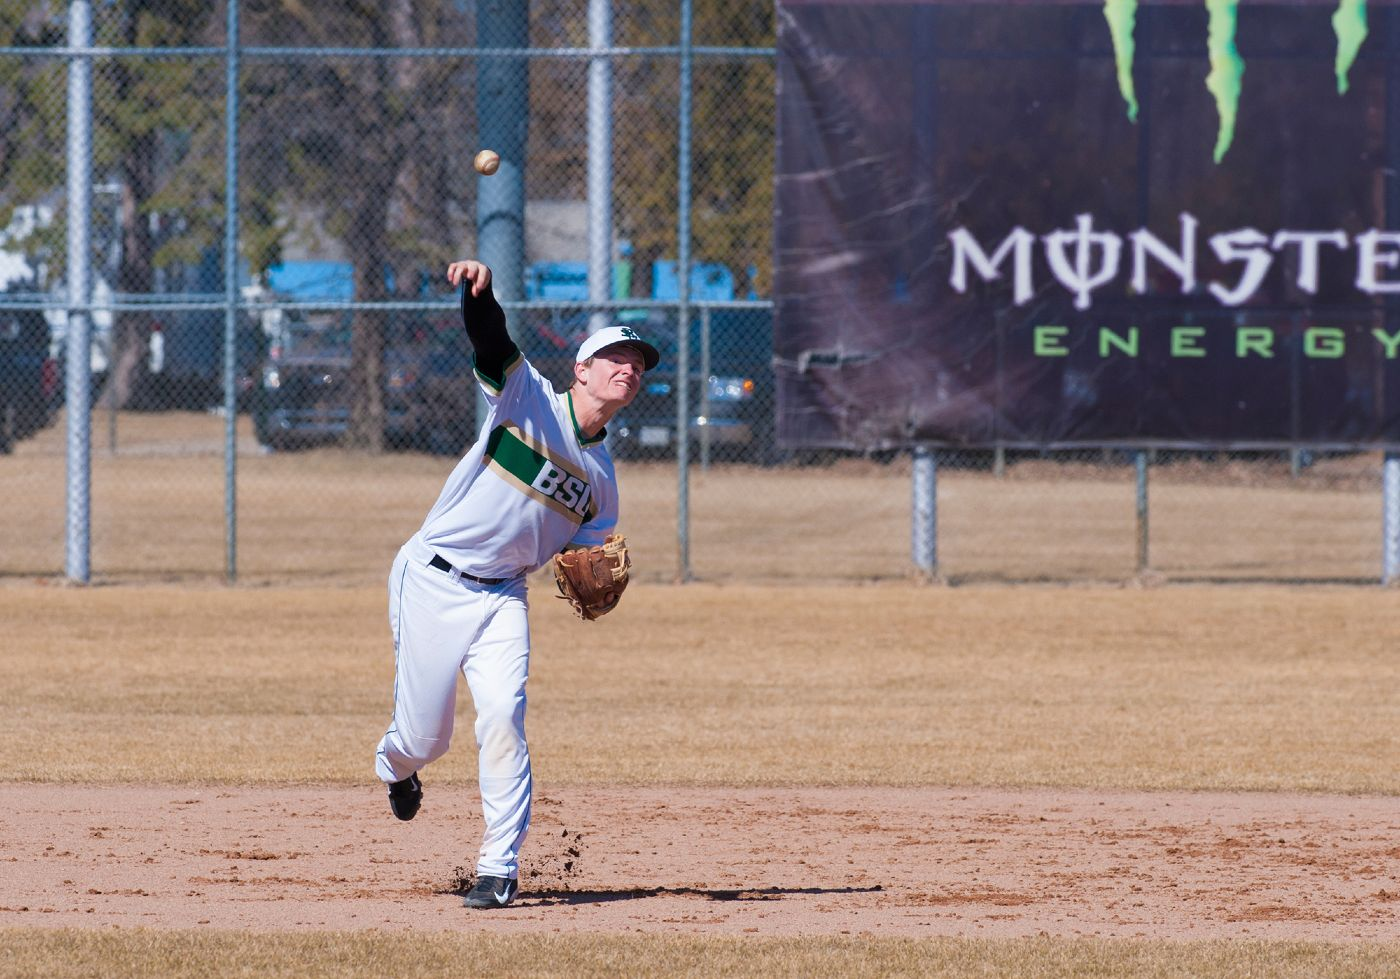 Stars shoot down Beavers with rally in eighth inning